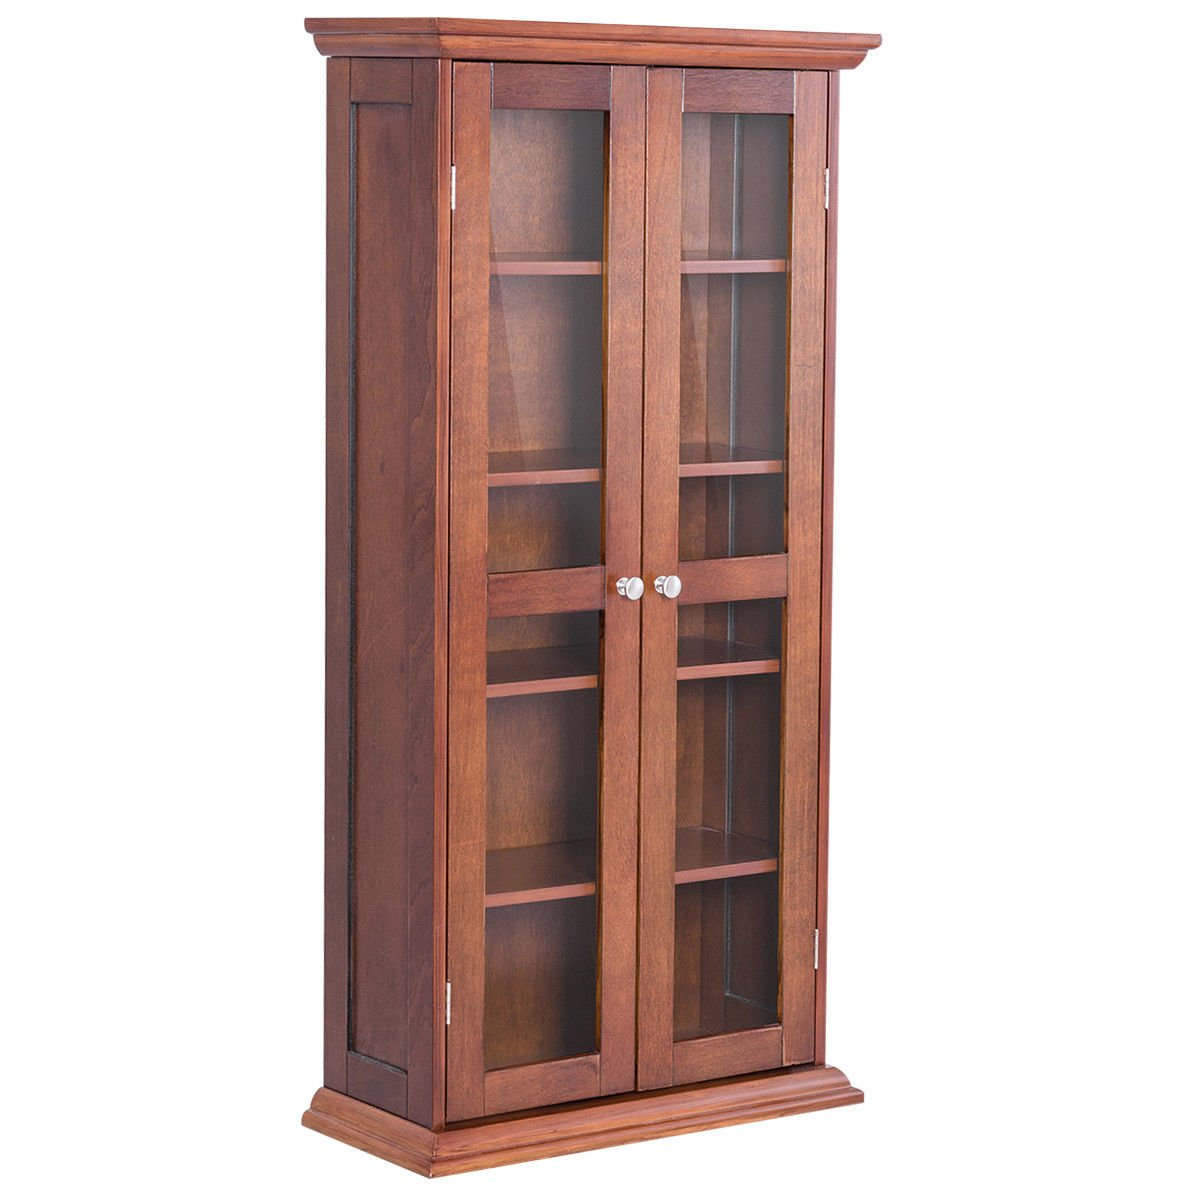 Tangkula Multimedia DVD/CD Storage Cabinet, Wooden Media Storage Cabinet, Multi-Functional Home Furniture Media Storage Tower with Tempered Glass Door, Brown by Tangkula